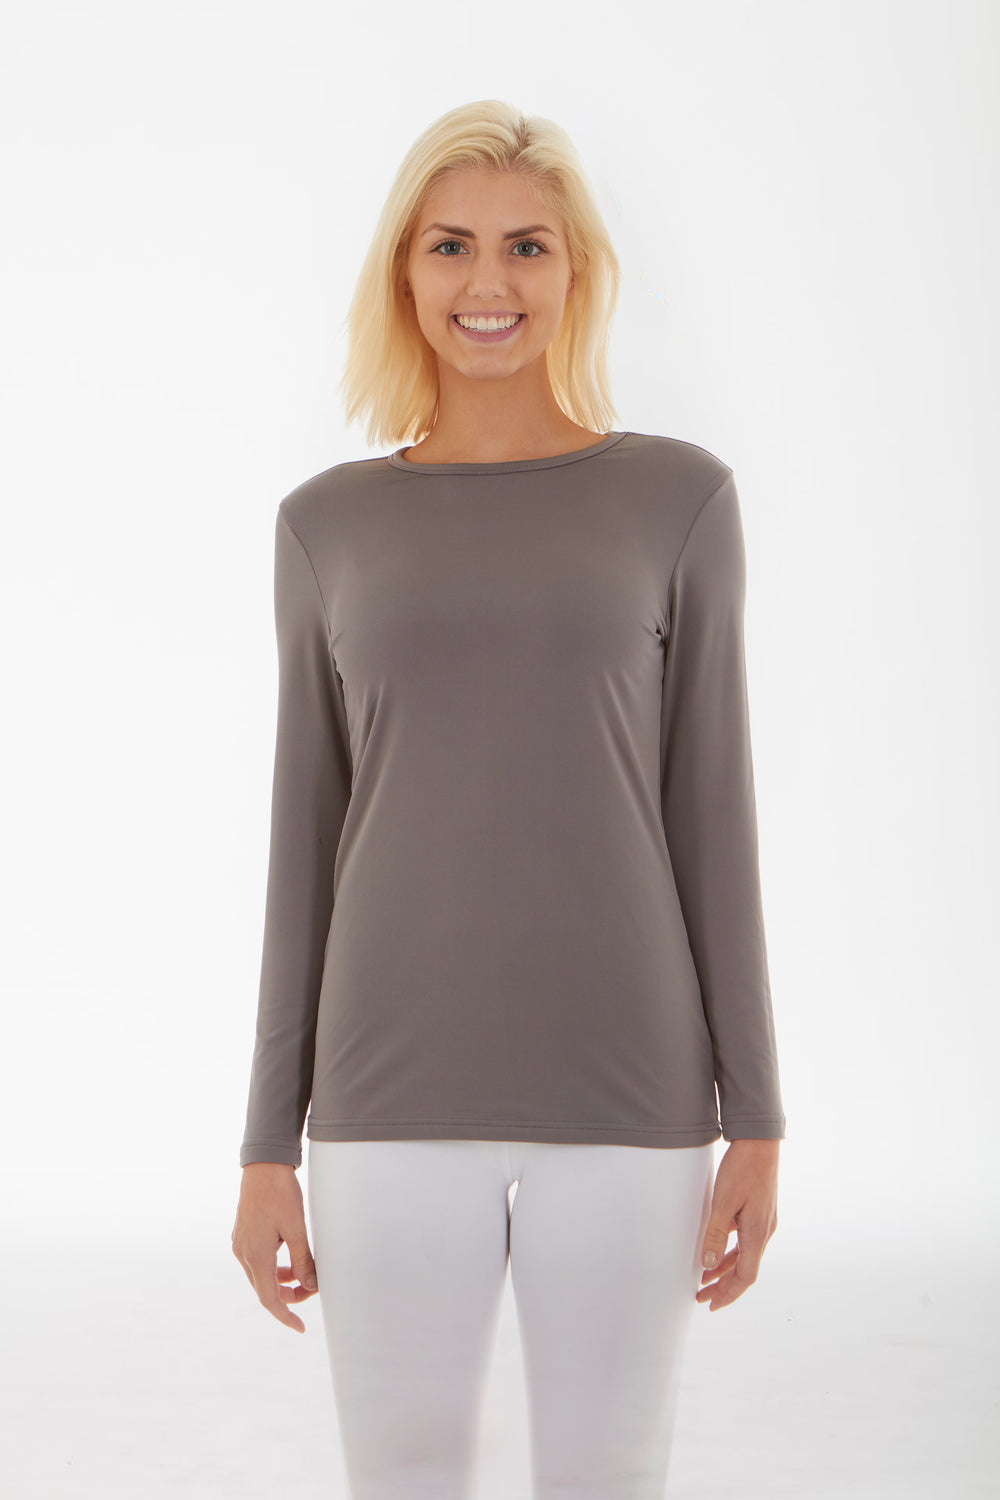 Grey Women's Crew Neck Shirt